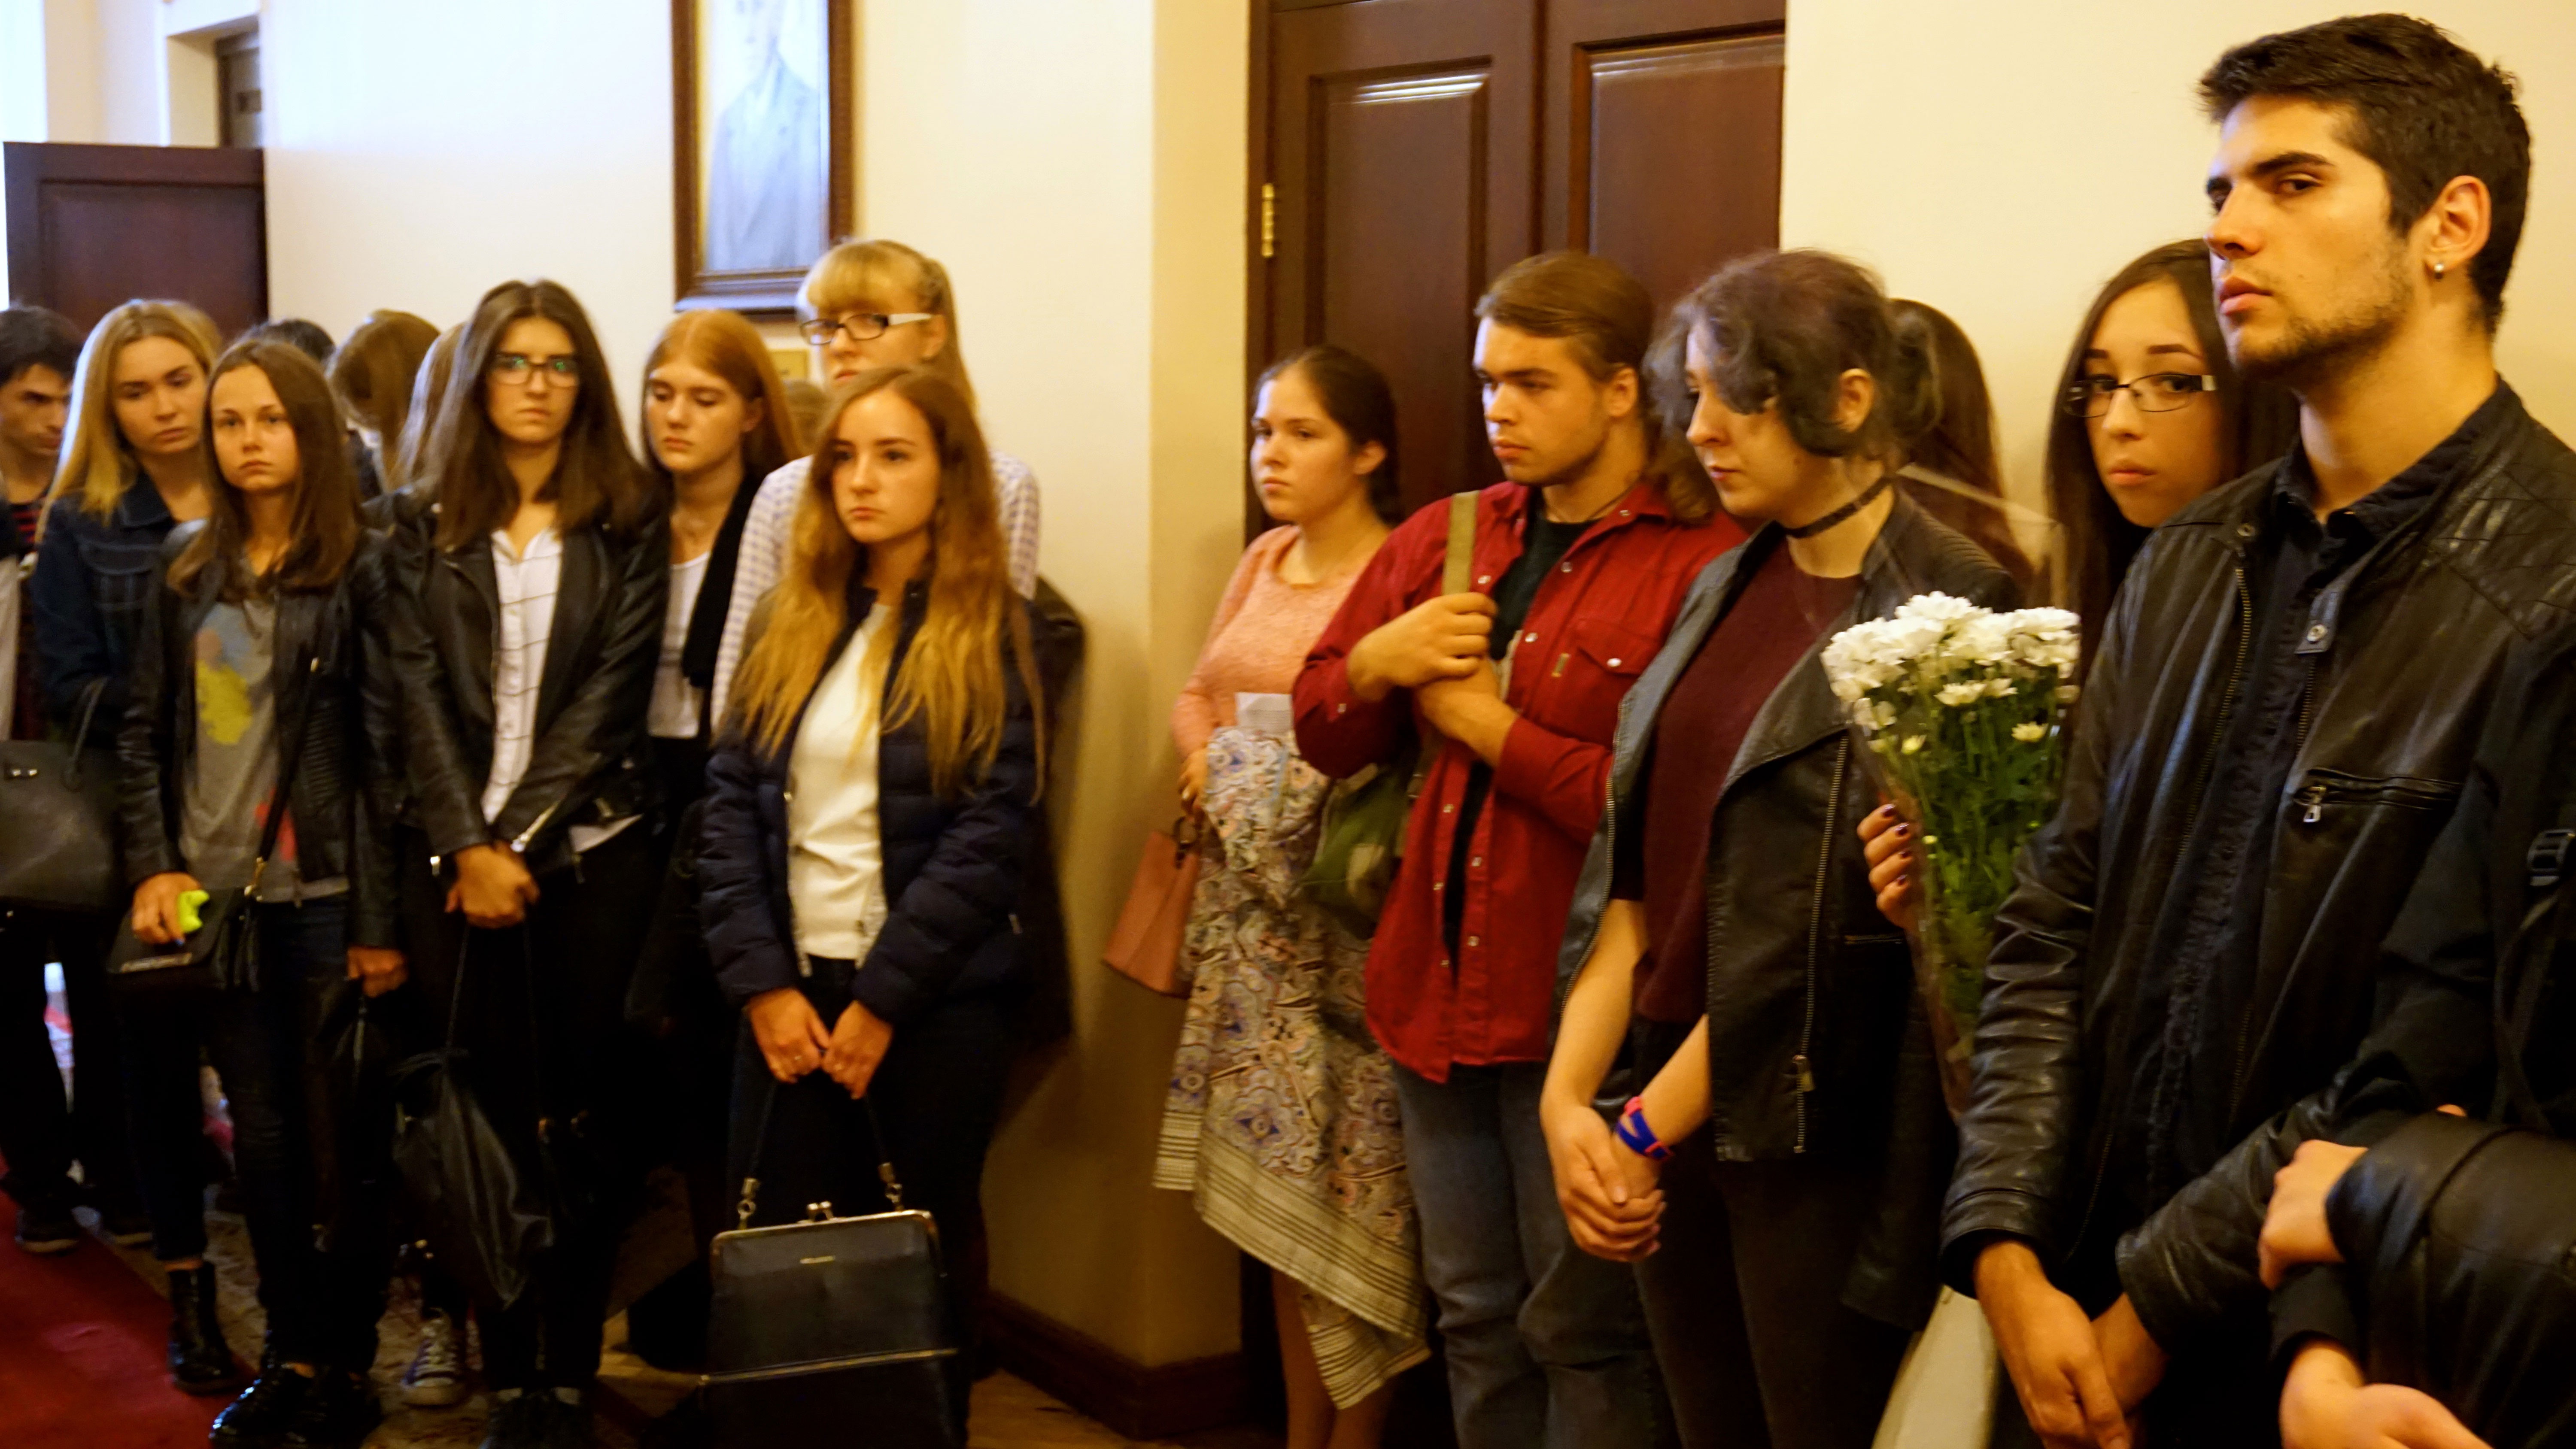 University students gathered for a memorial ceremony to commemorate the two-year anniversary of Sviatoslav Horbenko's death while fighting in eastern Ukraine. (Photo: Nolan Peterson/The Daily Signal)